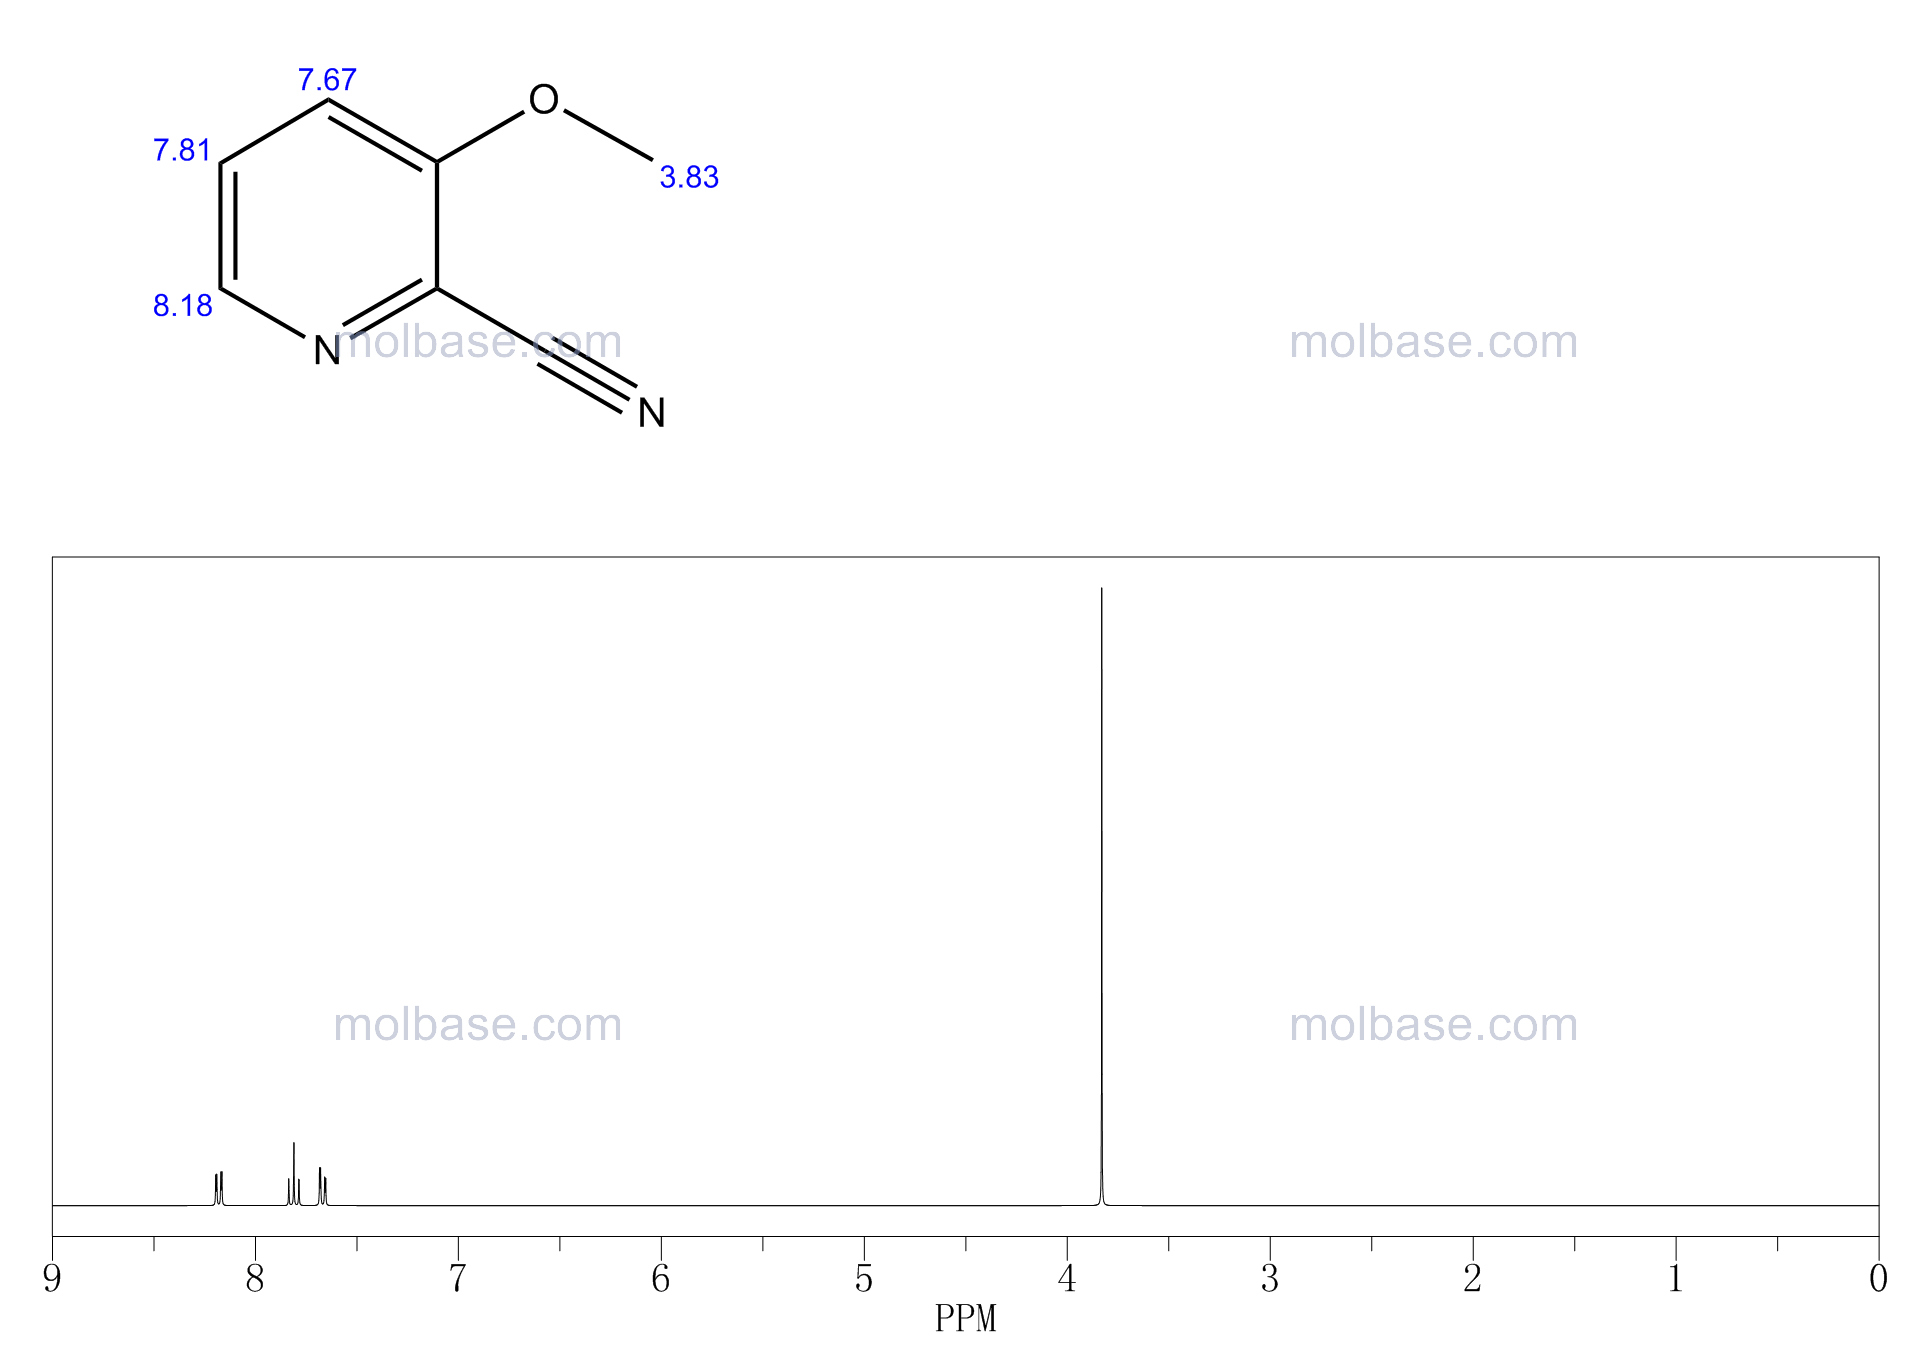 3-methoxypyridine-2-carbonitrile NMR spectra analysis, Chemical CAS NO. 24059-89-0 NMR spectral analysis, 3-methoxypyridine-2-carbonitrile C-NMR spectrum